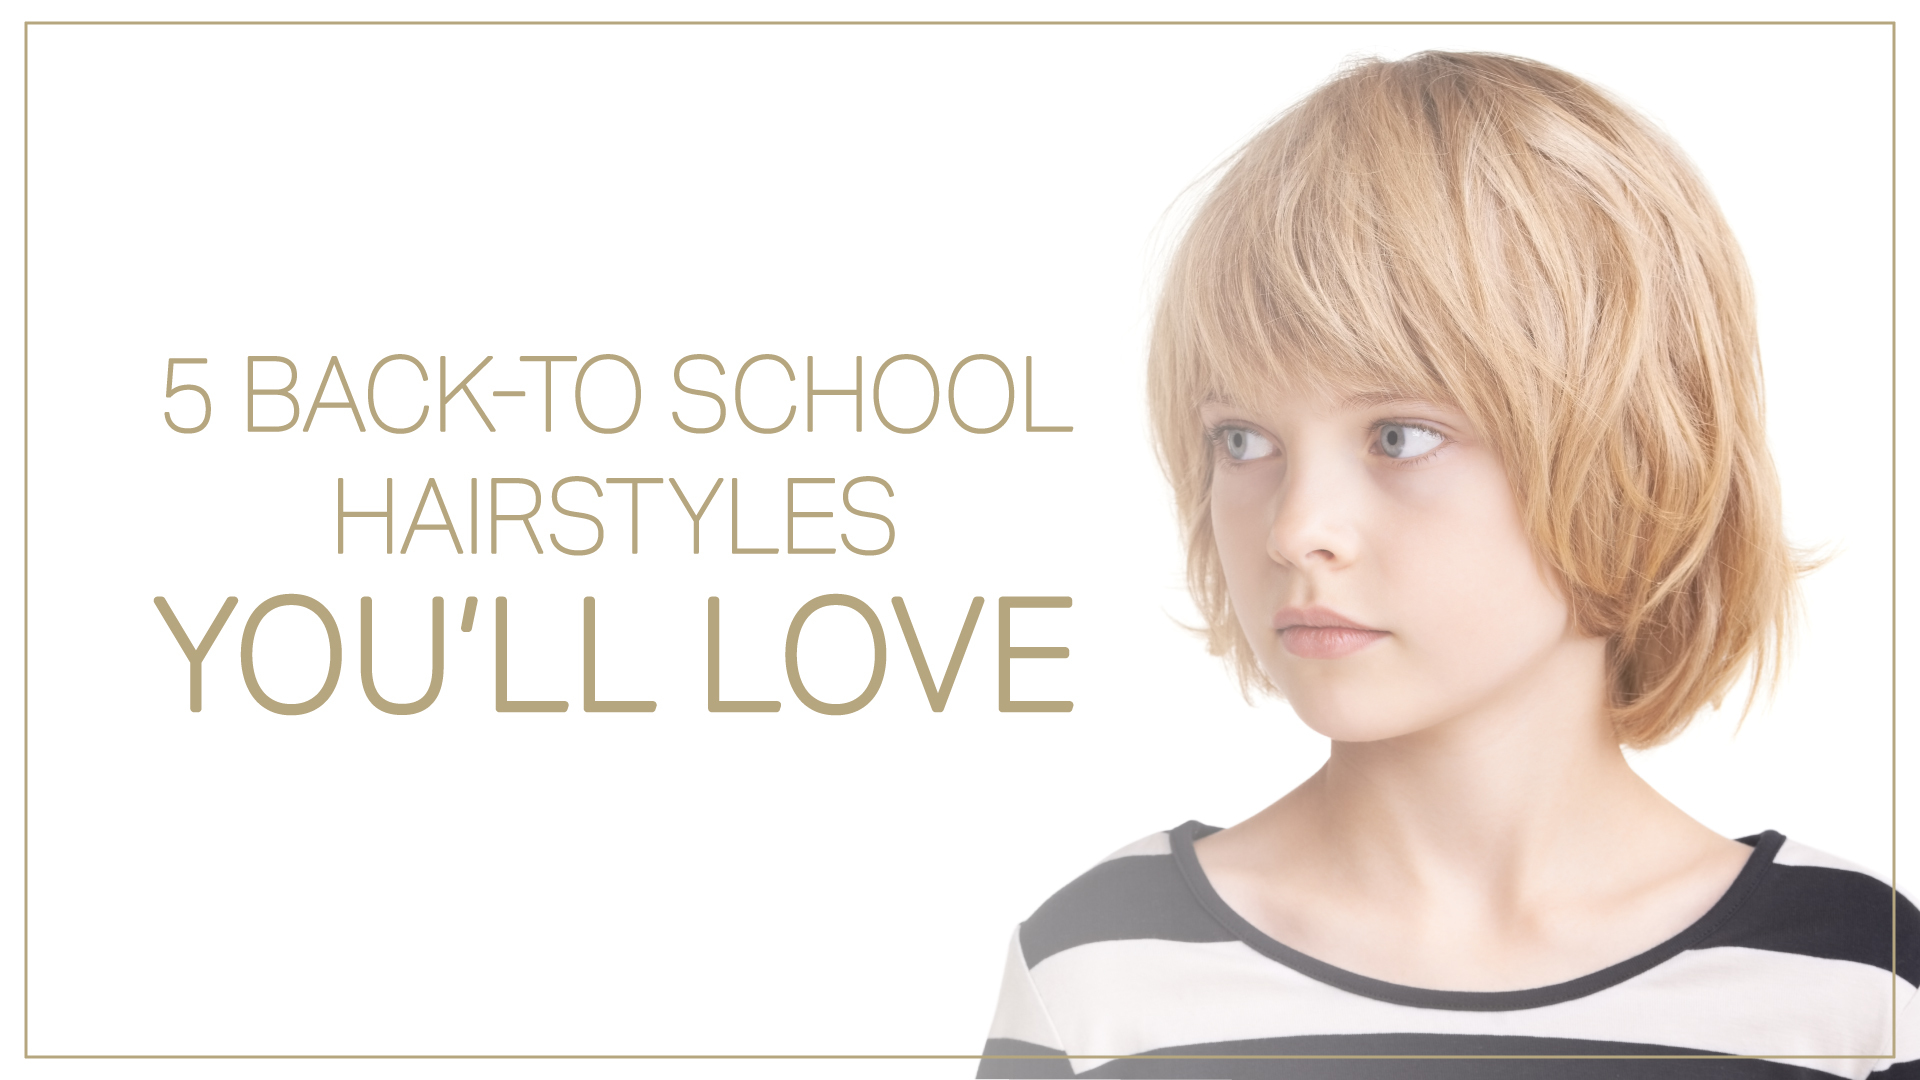 top 5 back to school hairstyles - back to school - caralyn's hair - ottawa - ottawa salons